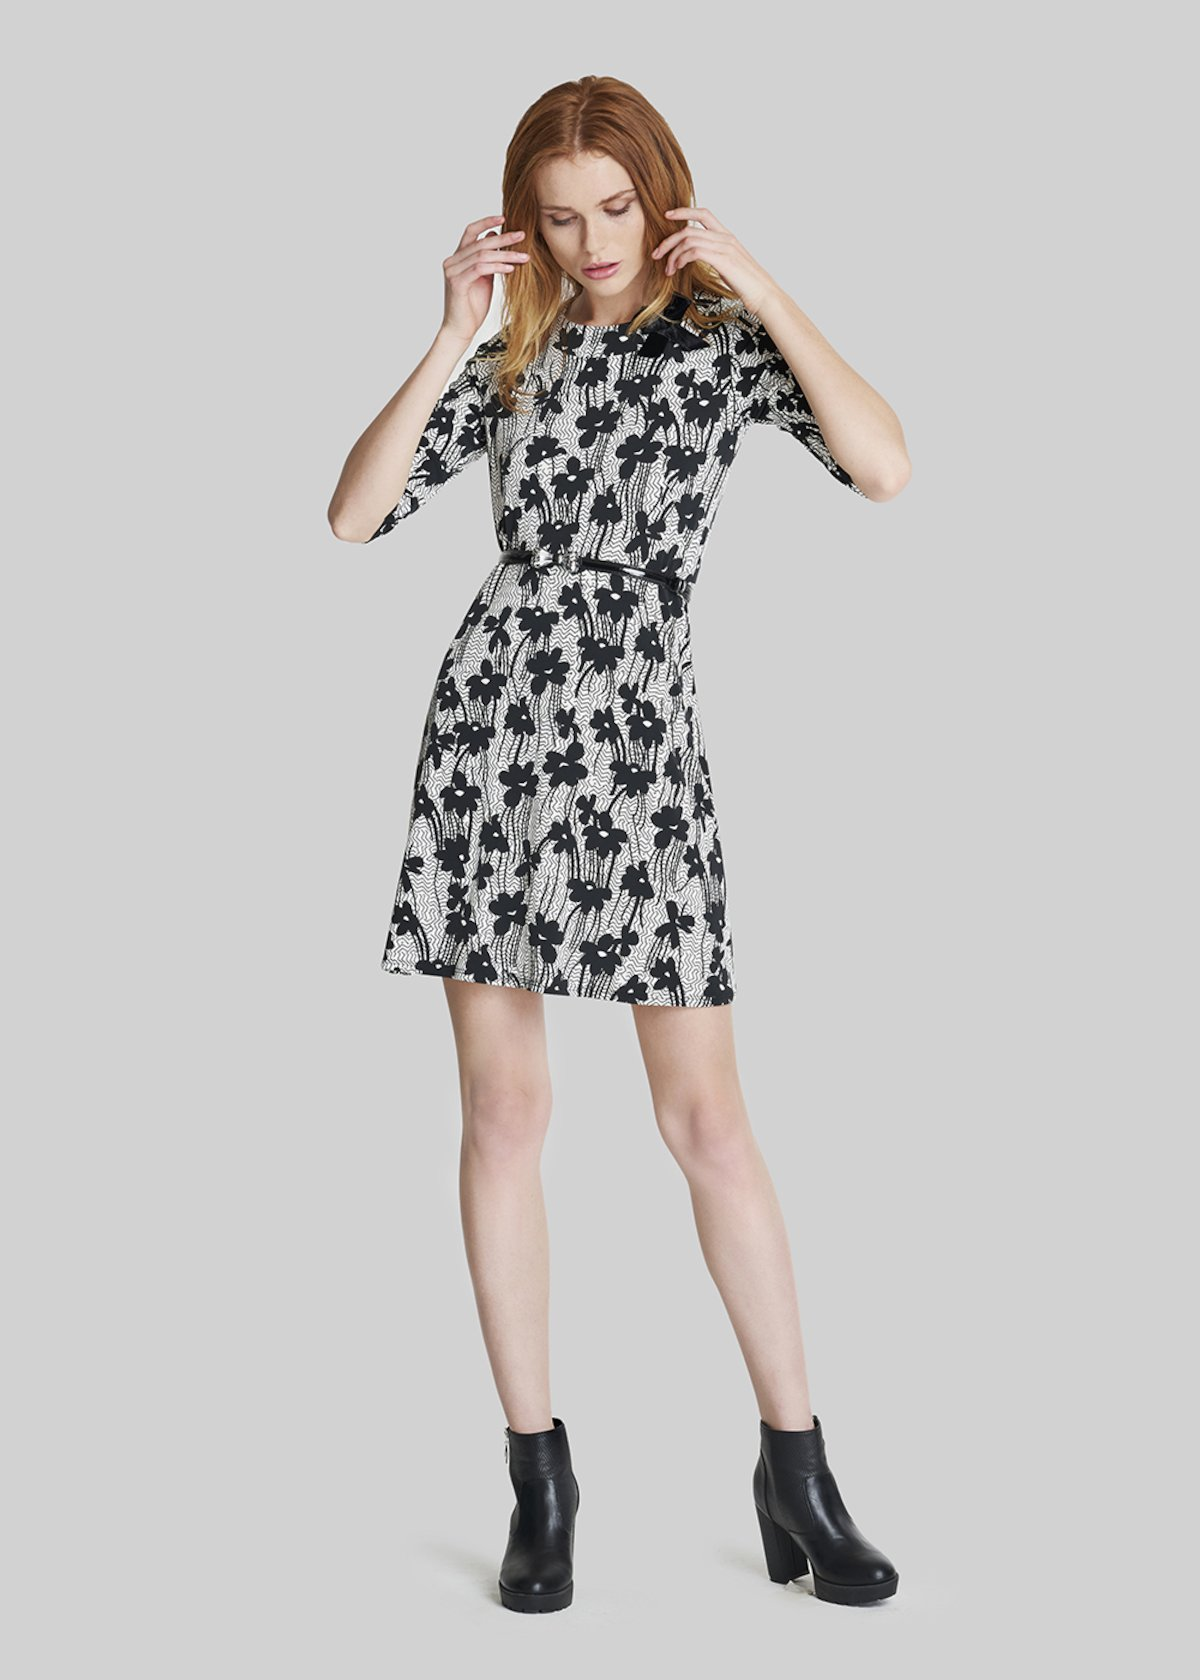 Athos dress alice flowers fantasy with bow - Black White Fantasia - Woman - Category image